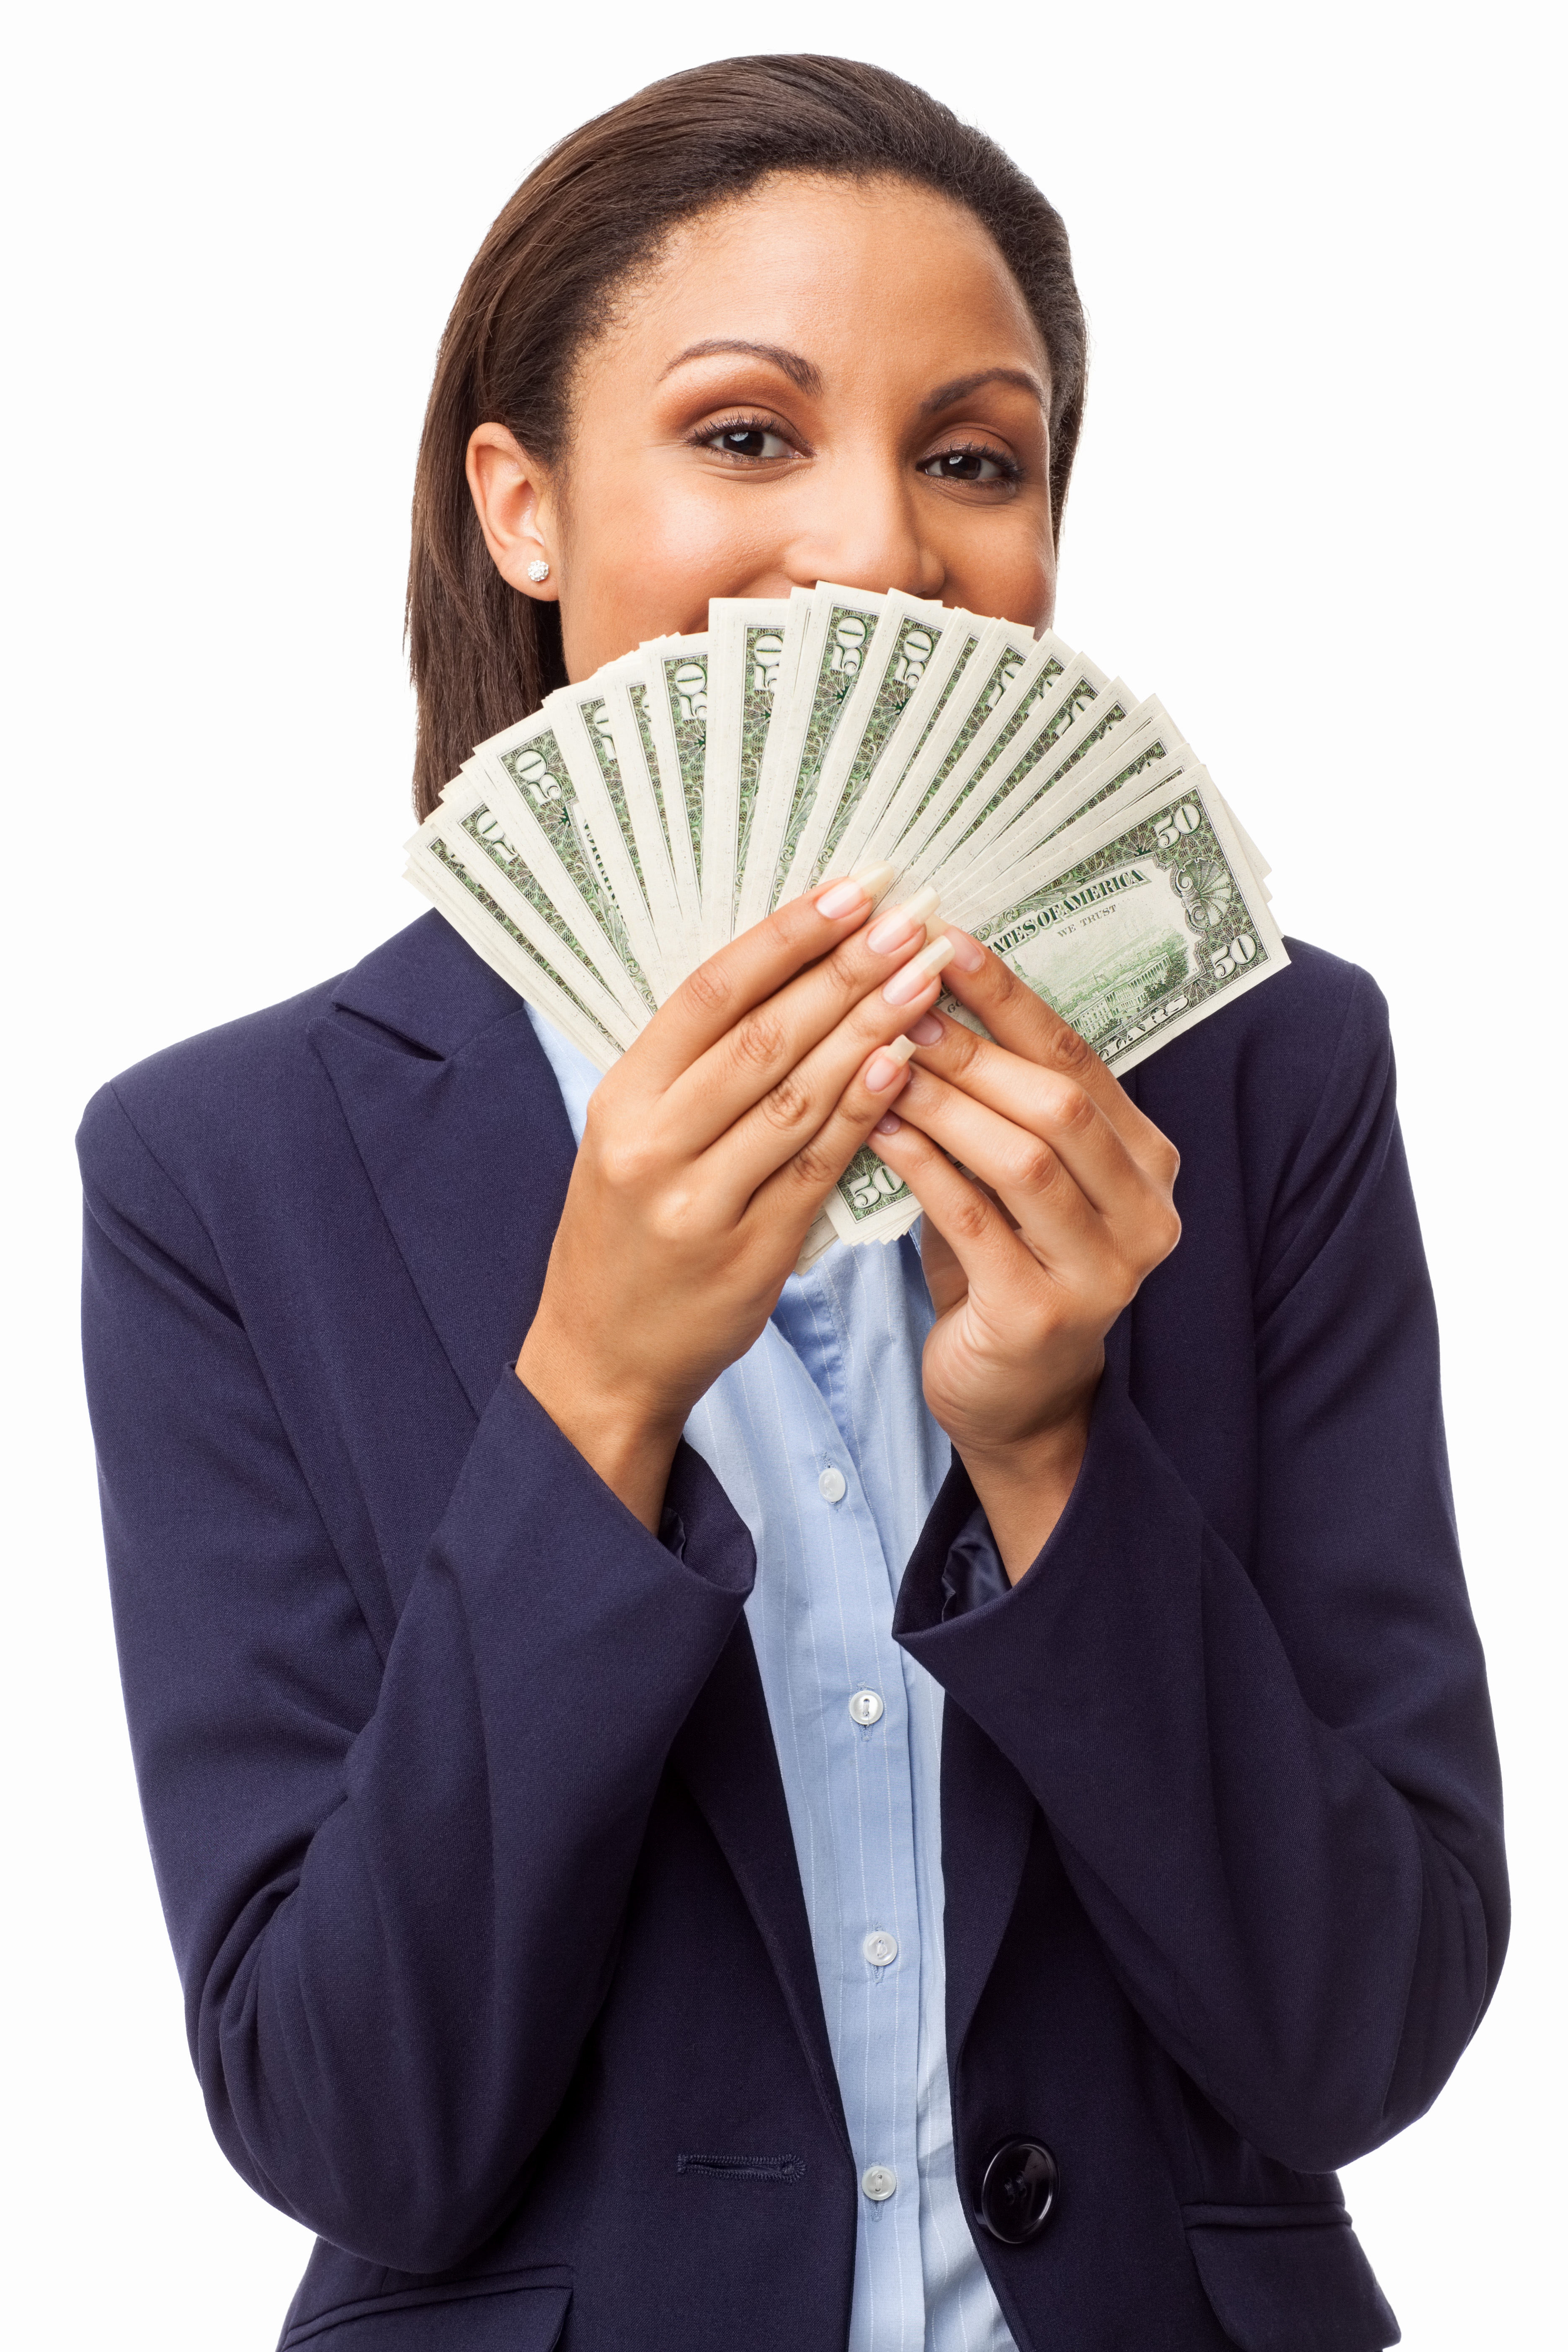 Female Executive Holding Fanned Out Banknotes - Isolated